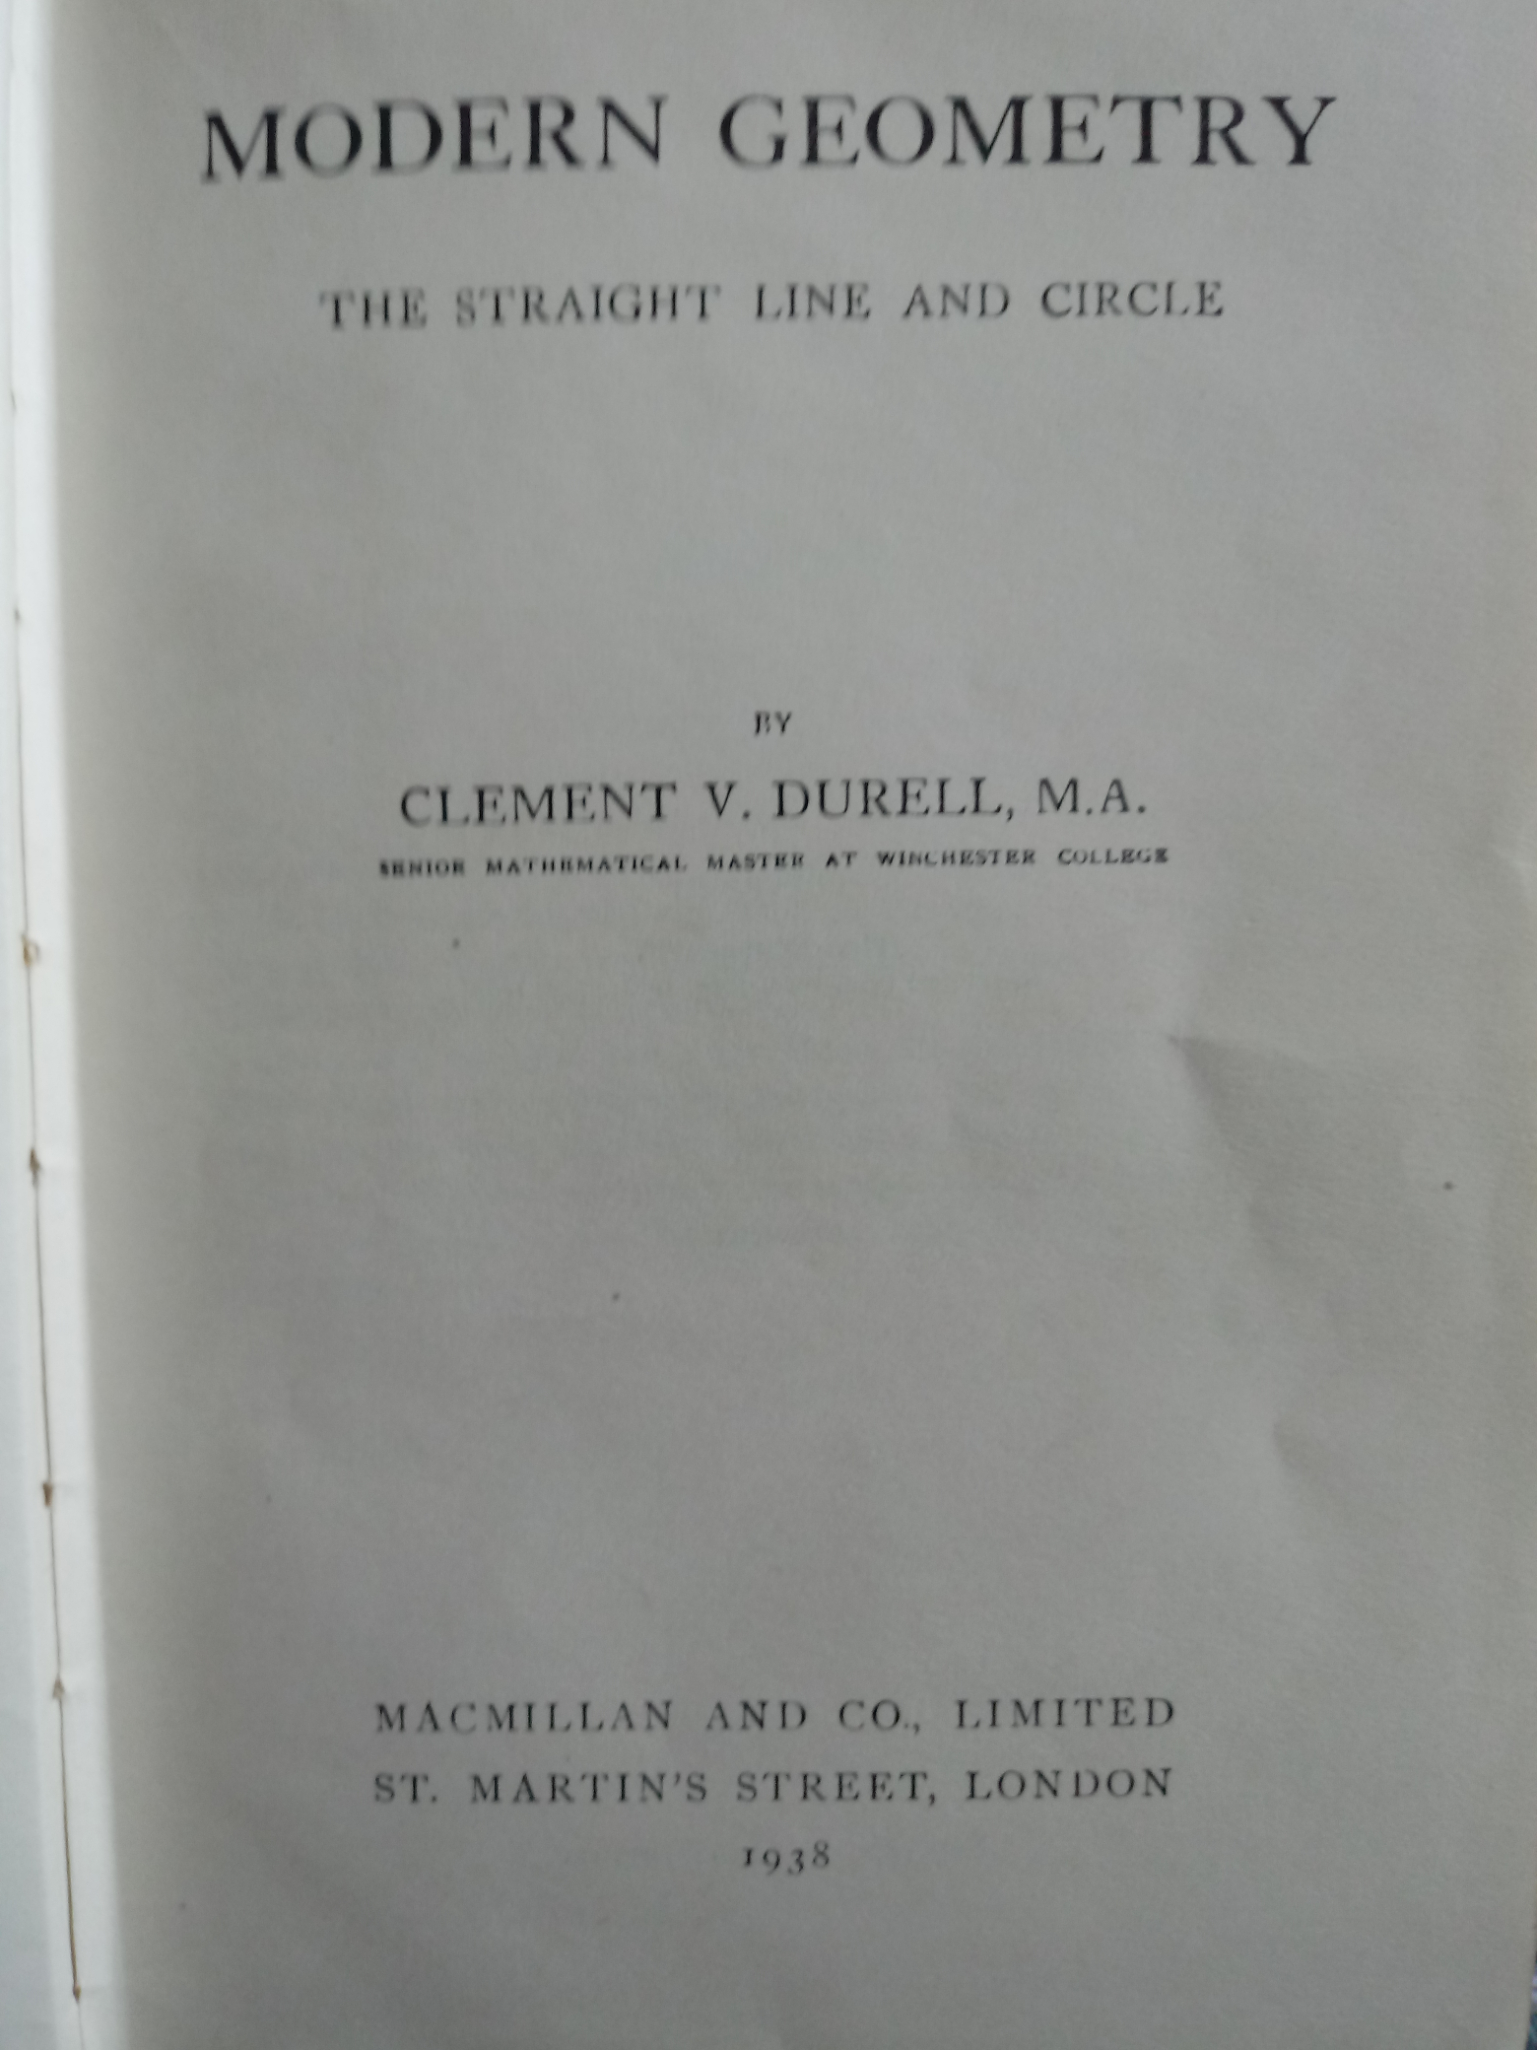 Modern Geometry hardback book by C.V Durell 145 pages Published 1938 by Macmillan And Co Ltd. No - Image 3 of 3